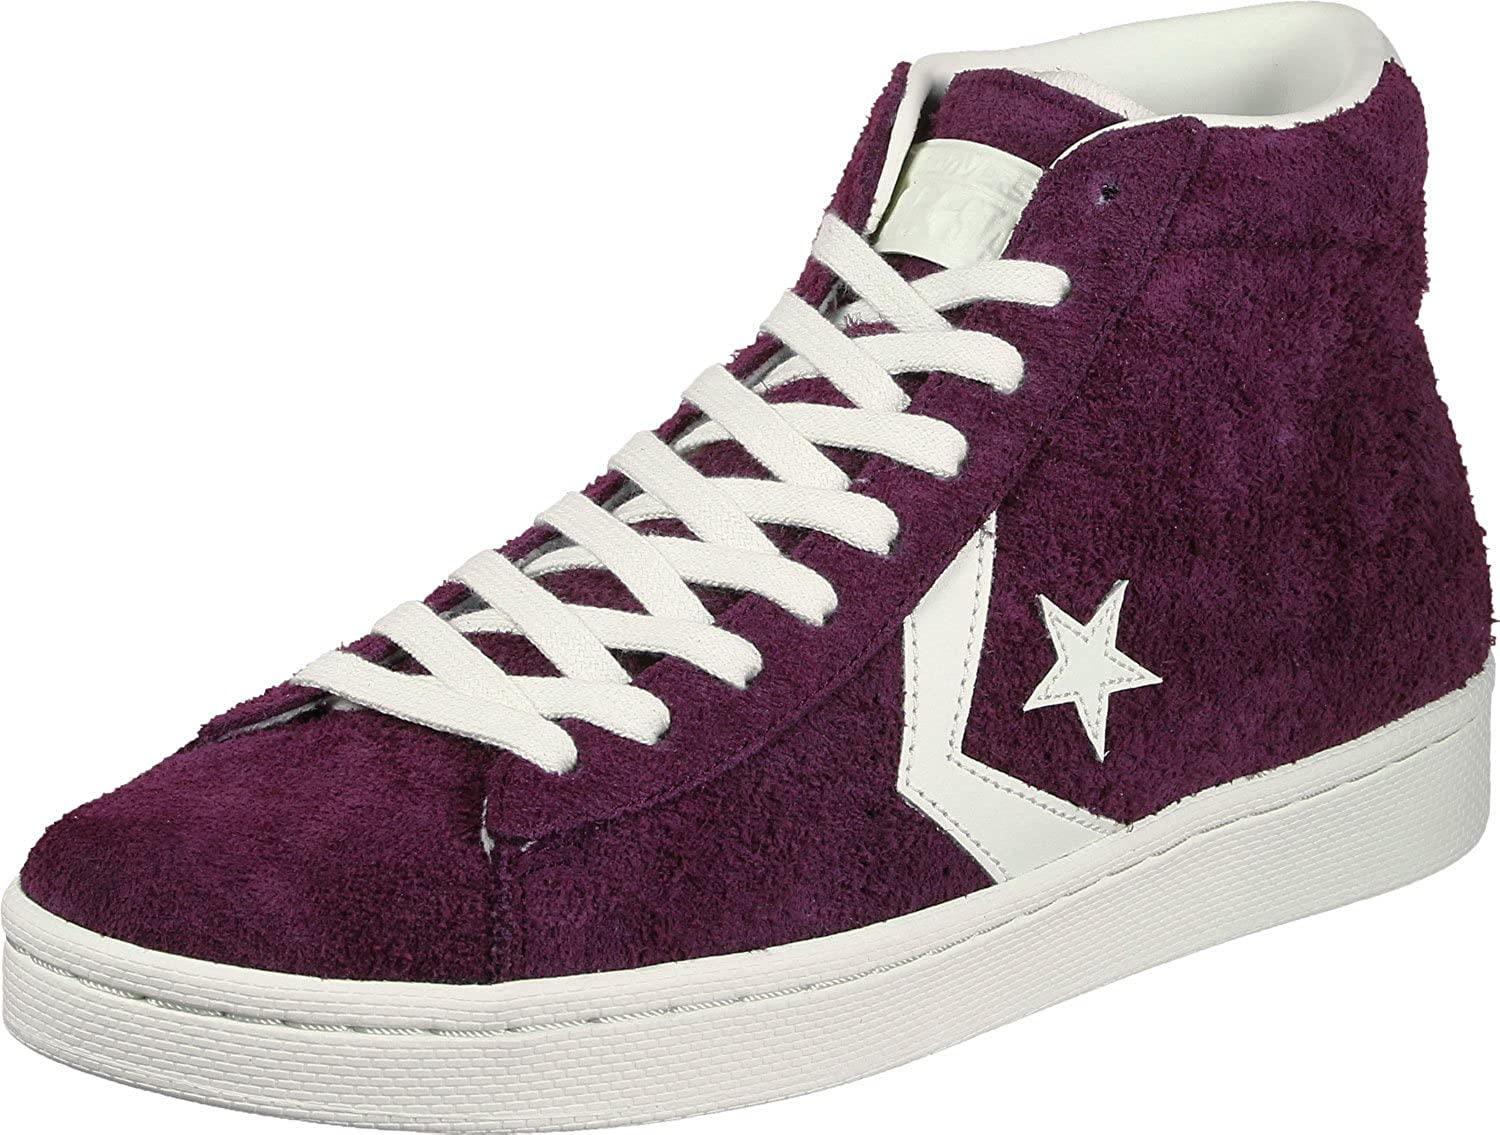 a2a3178553d Converse Pro Leather 76 Mid Shoes  Amazon.co.uk  Shoes   Bags